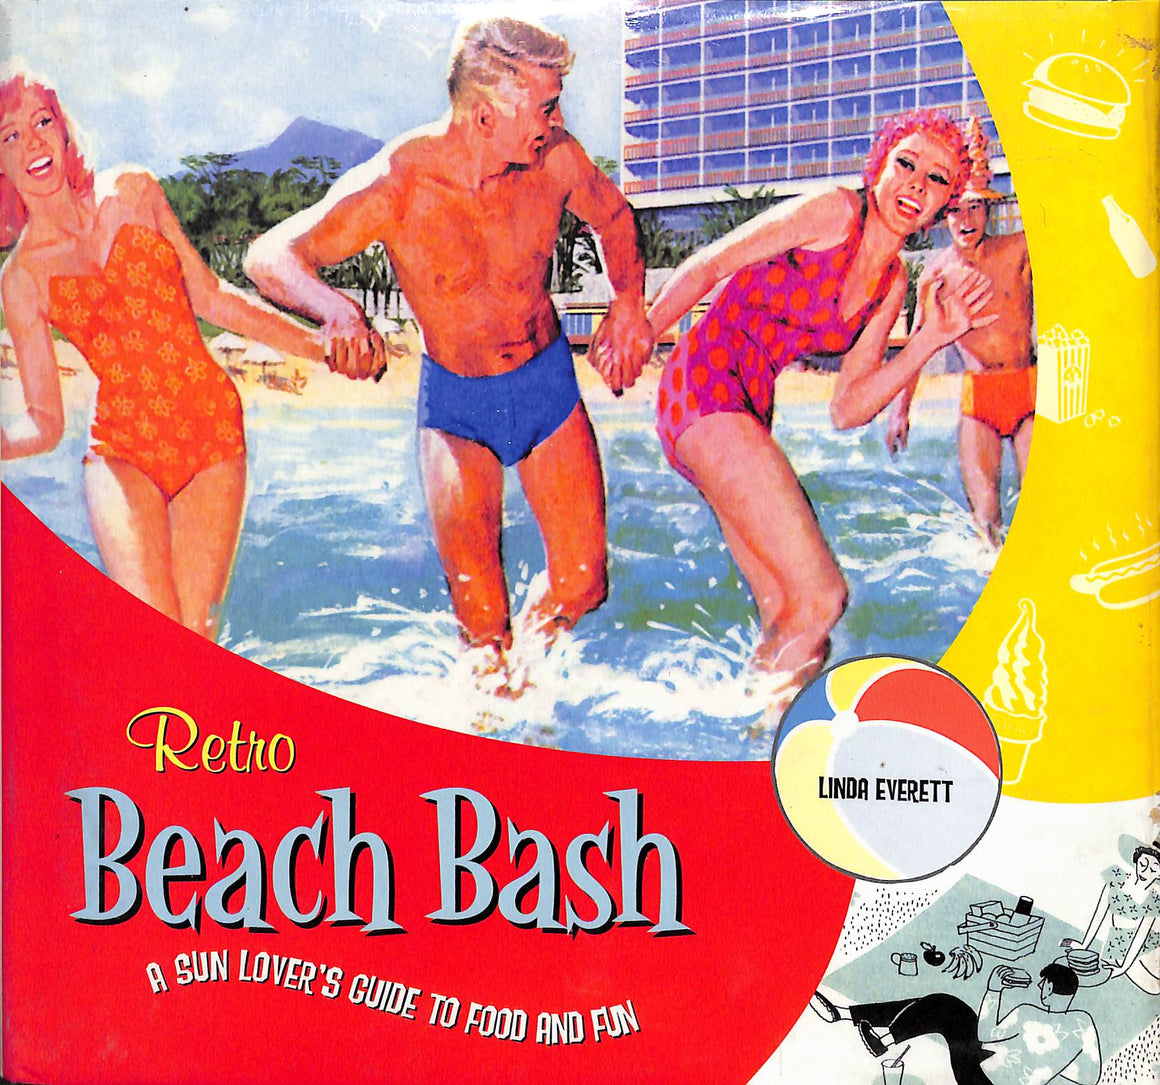 Retro Beach Bash: A Sun Lover's Guide to Food and Fun